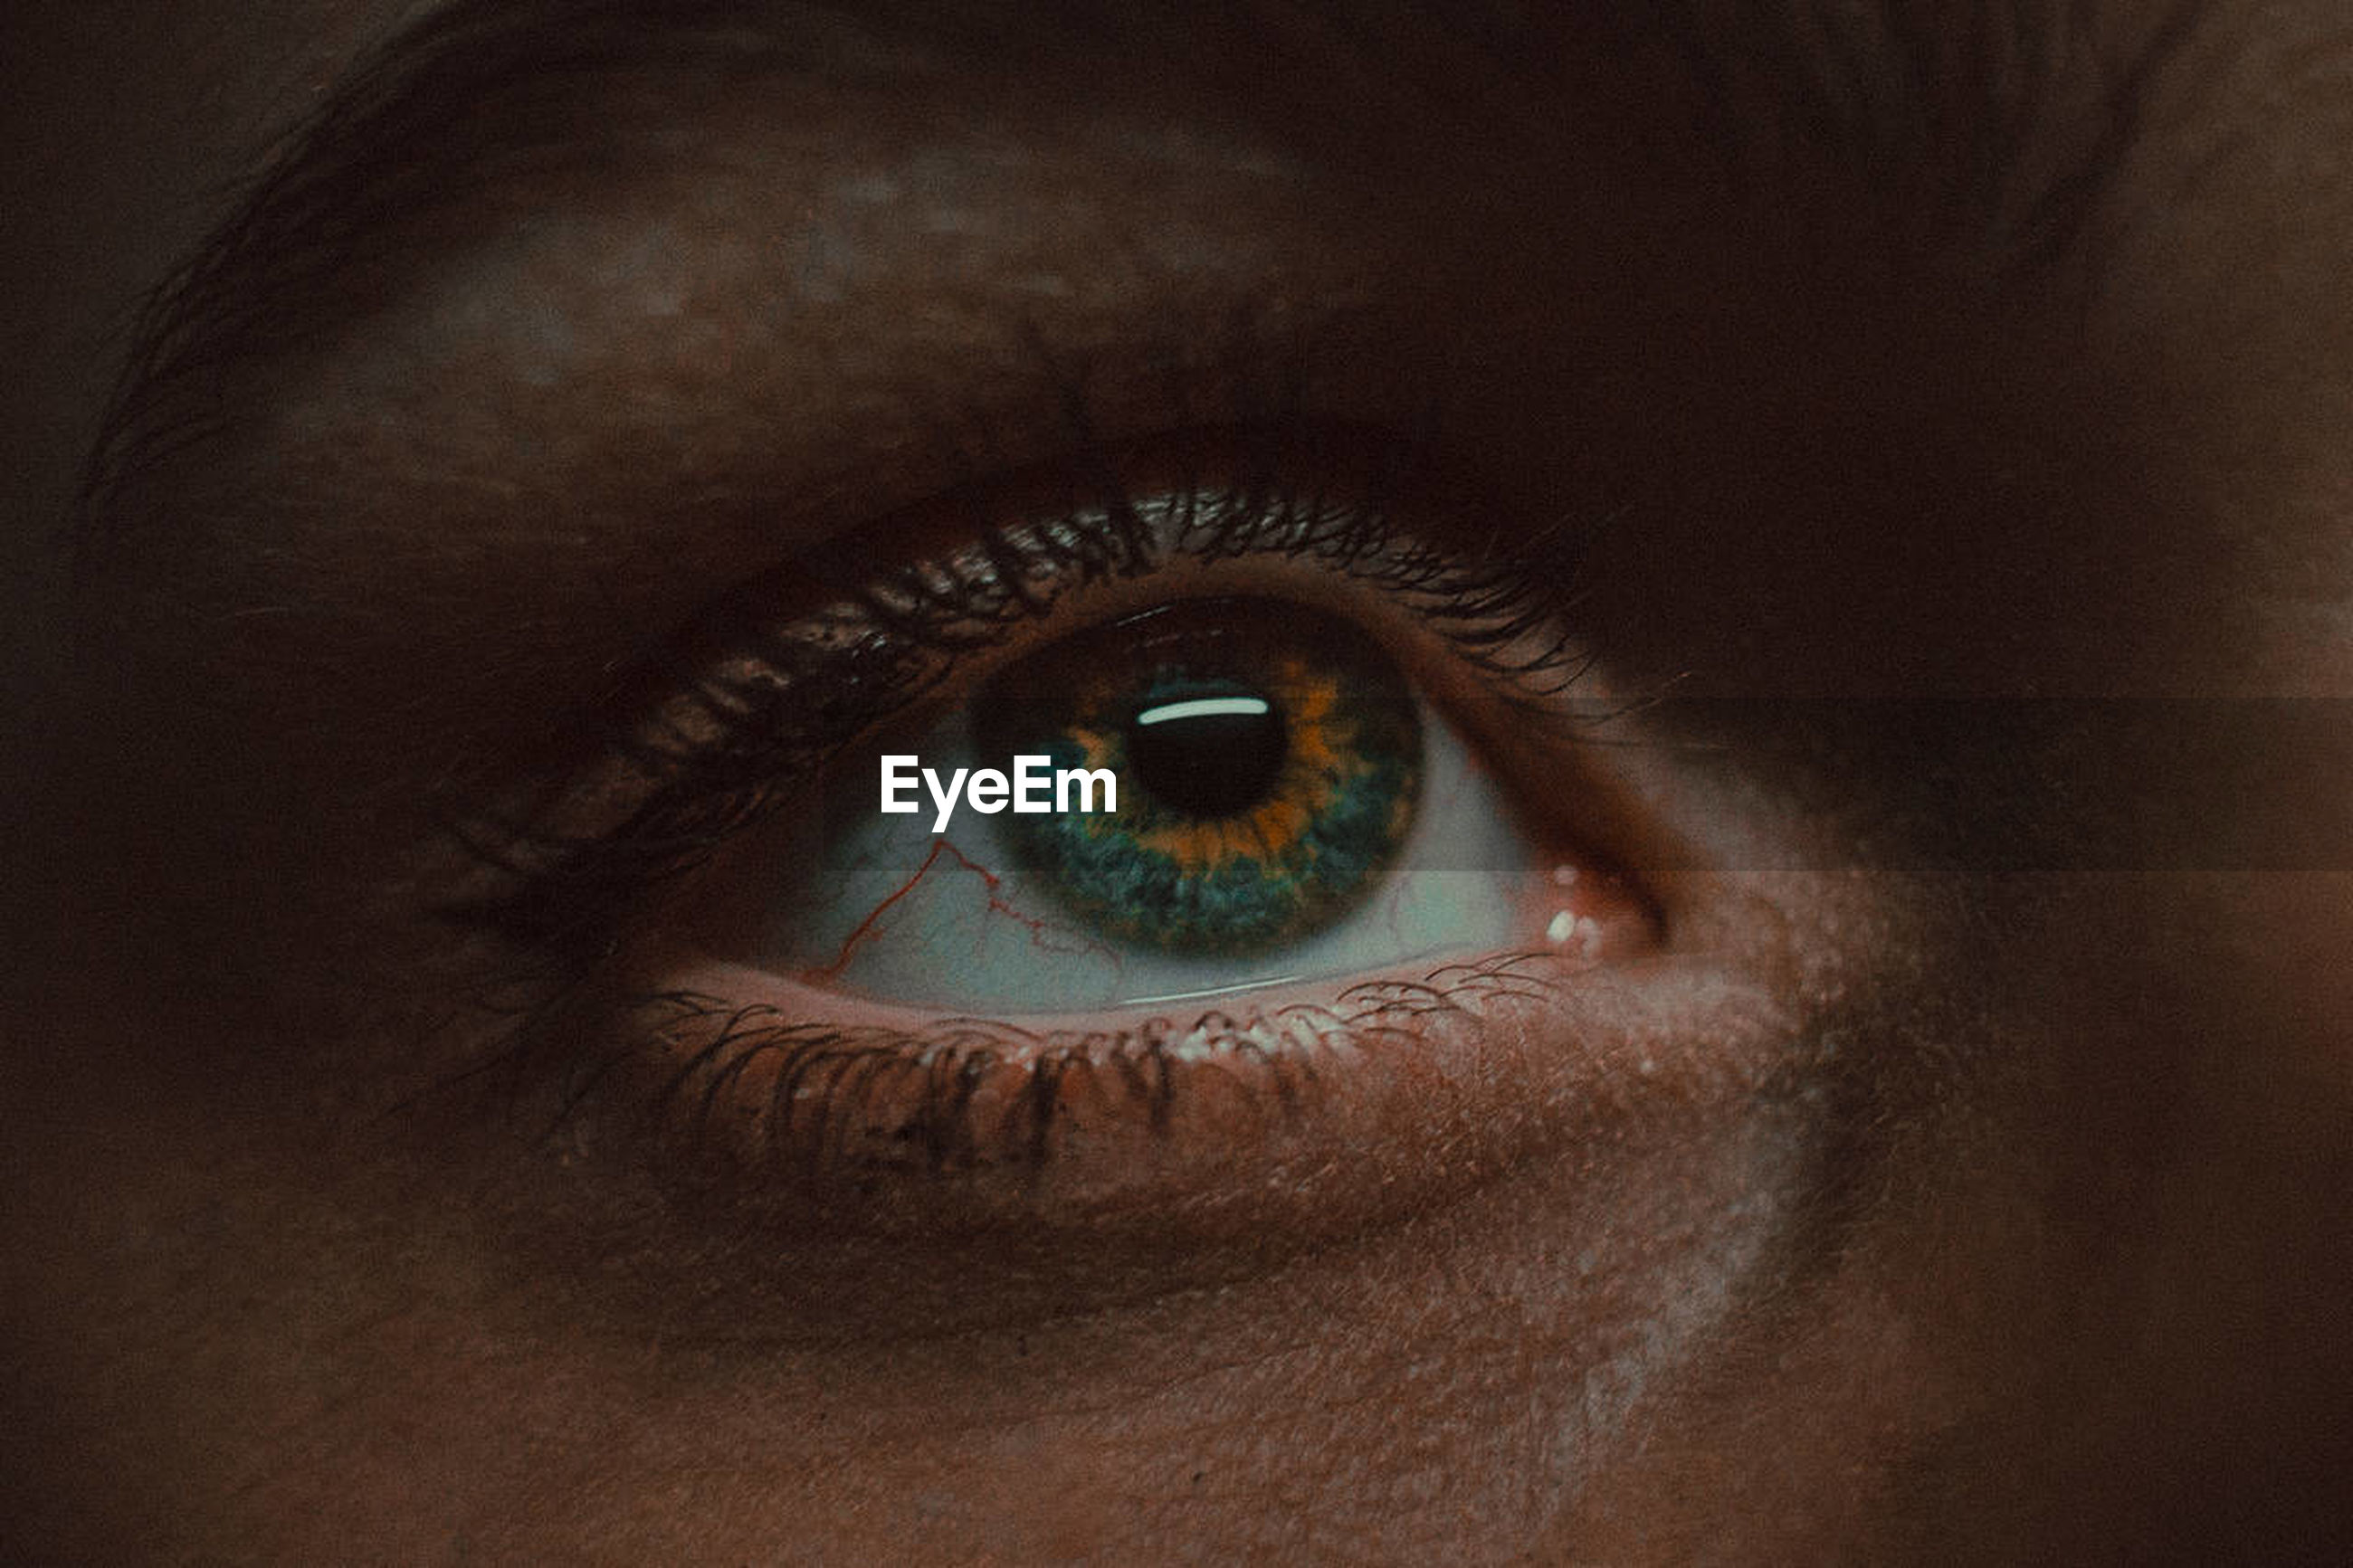 eye, human eye, eyesight, sensory perception, eyelash, body part, human body part, one person, close-up, eyeball, iris - eye, real people, looking at camera, portrait, extreme close-up, eyebrow, human face, adult, human skin, eyelid